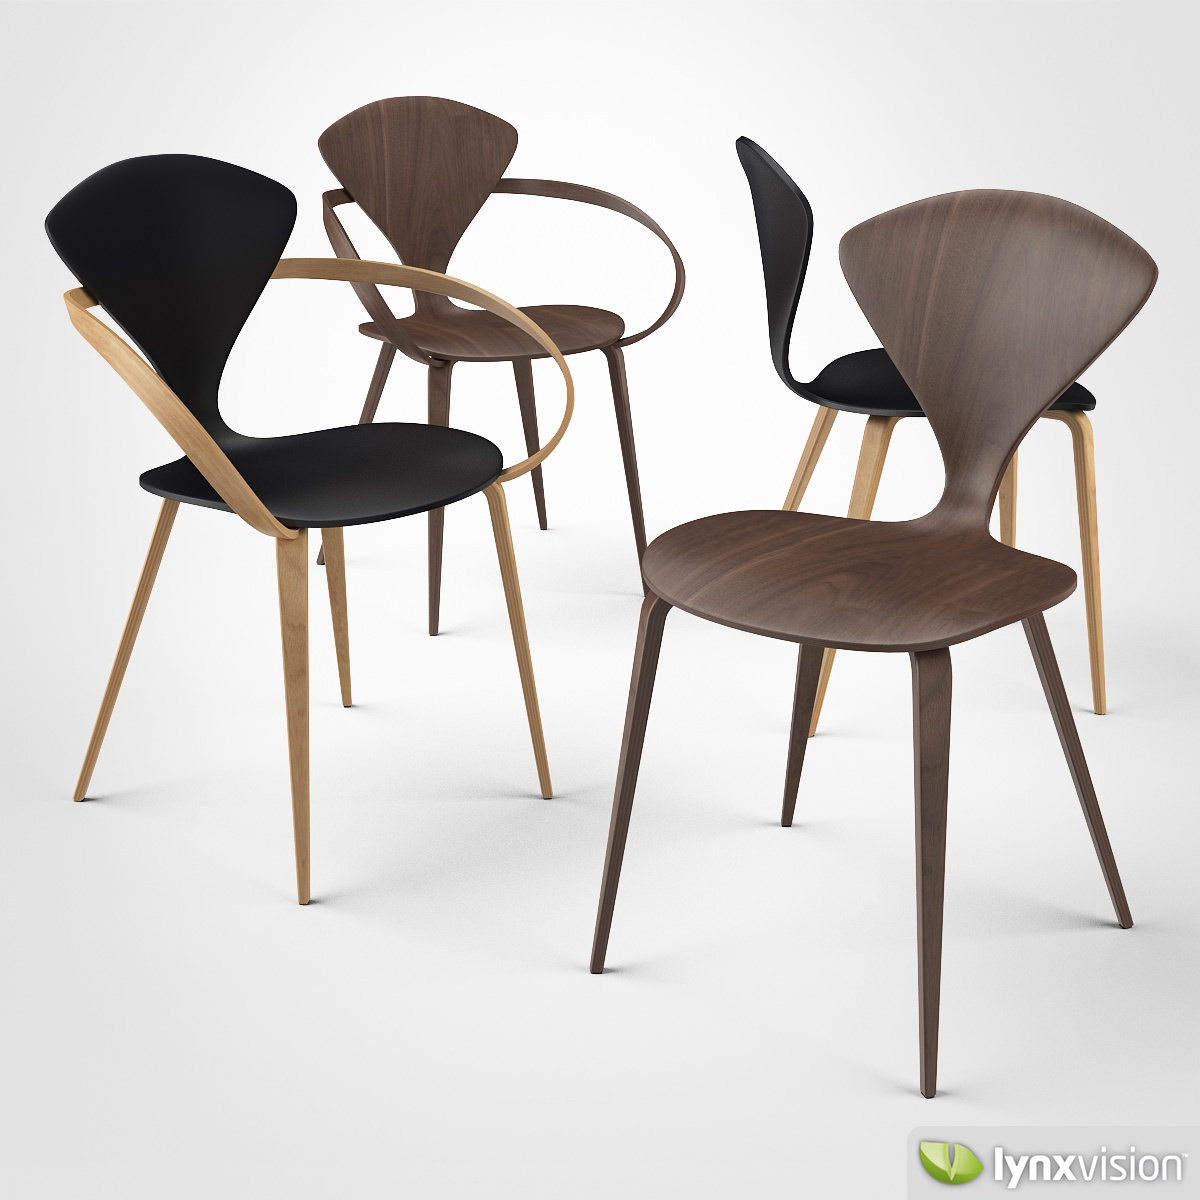 Cherner Side Chair And Armchair 3d Model Max Obj 3ds Fbx